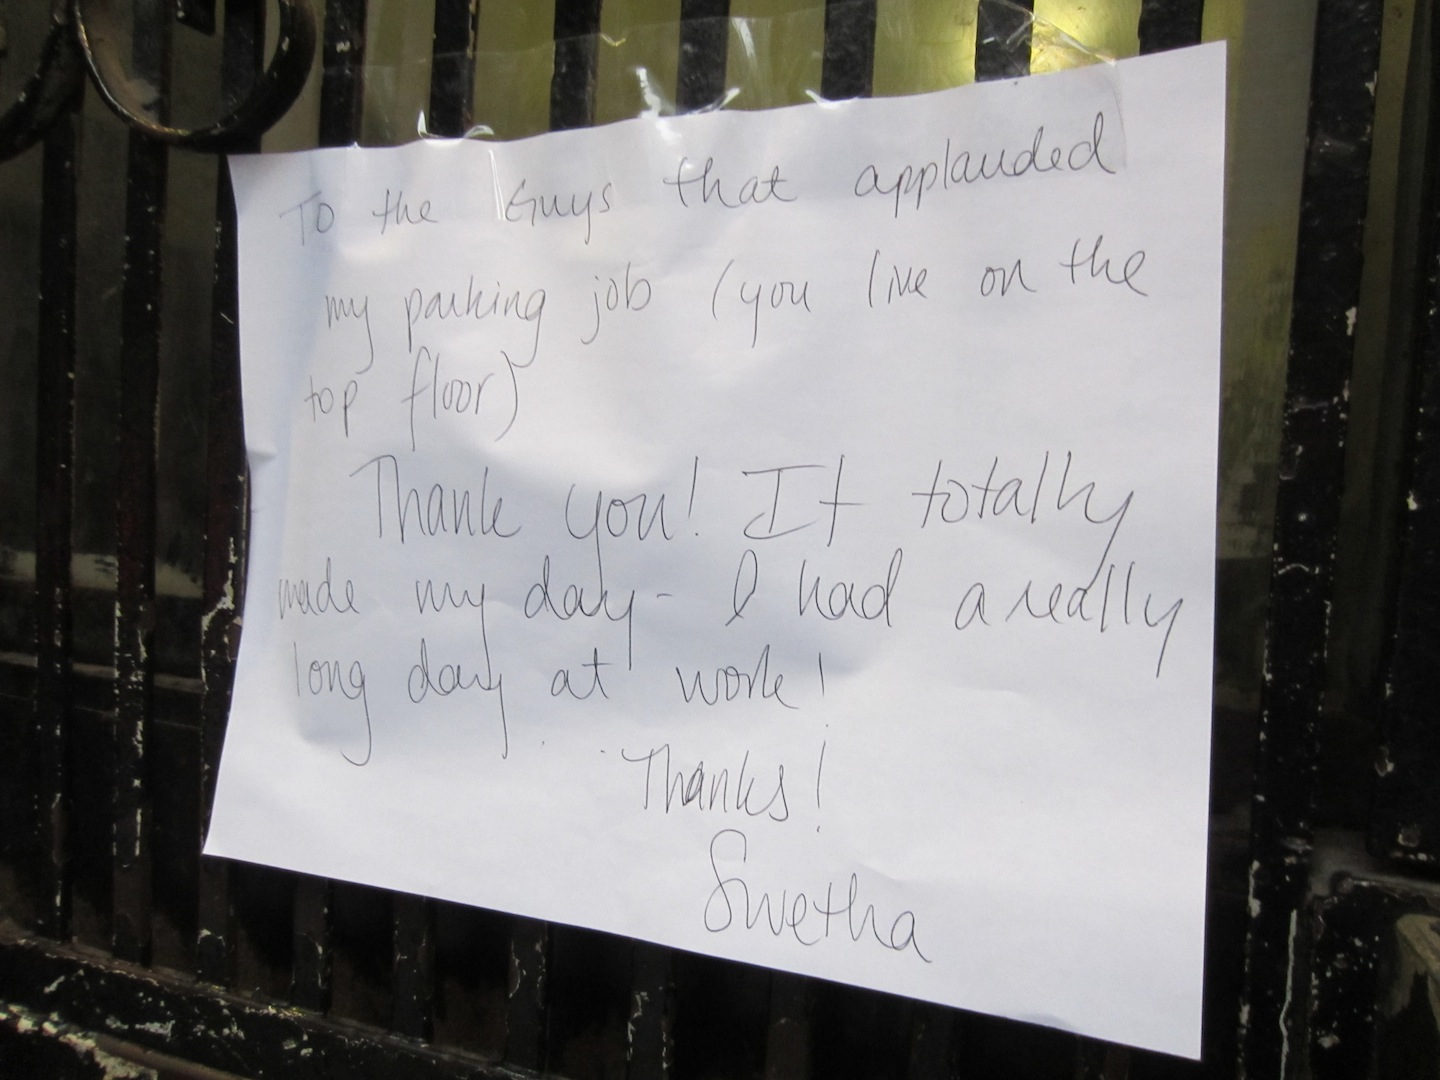 EV Grieve: Today in passive-aggressive notes on East Fourth